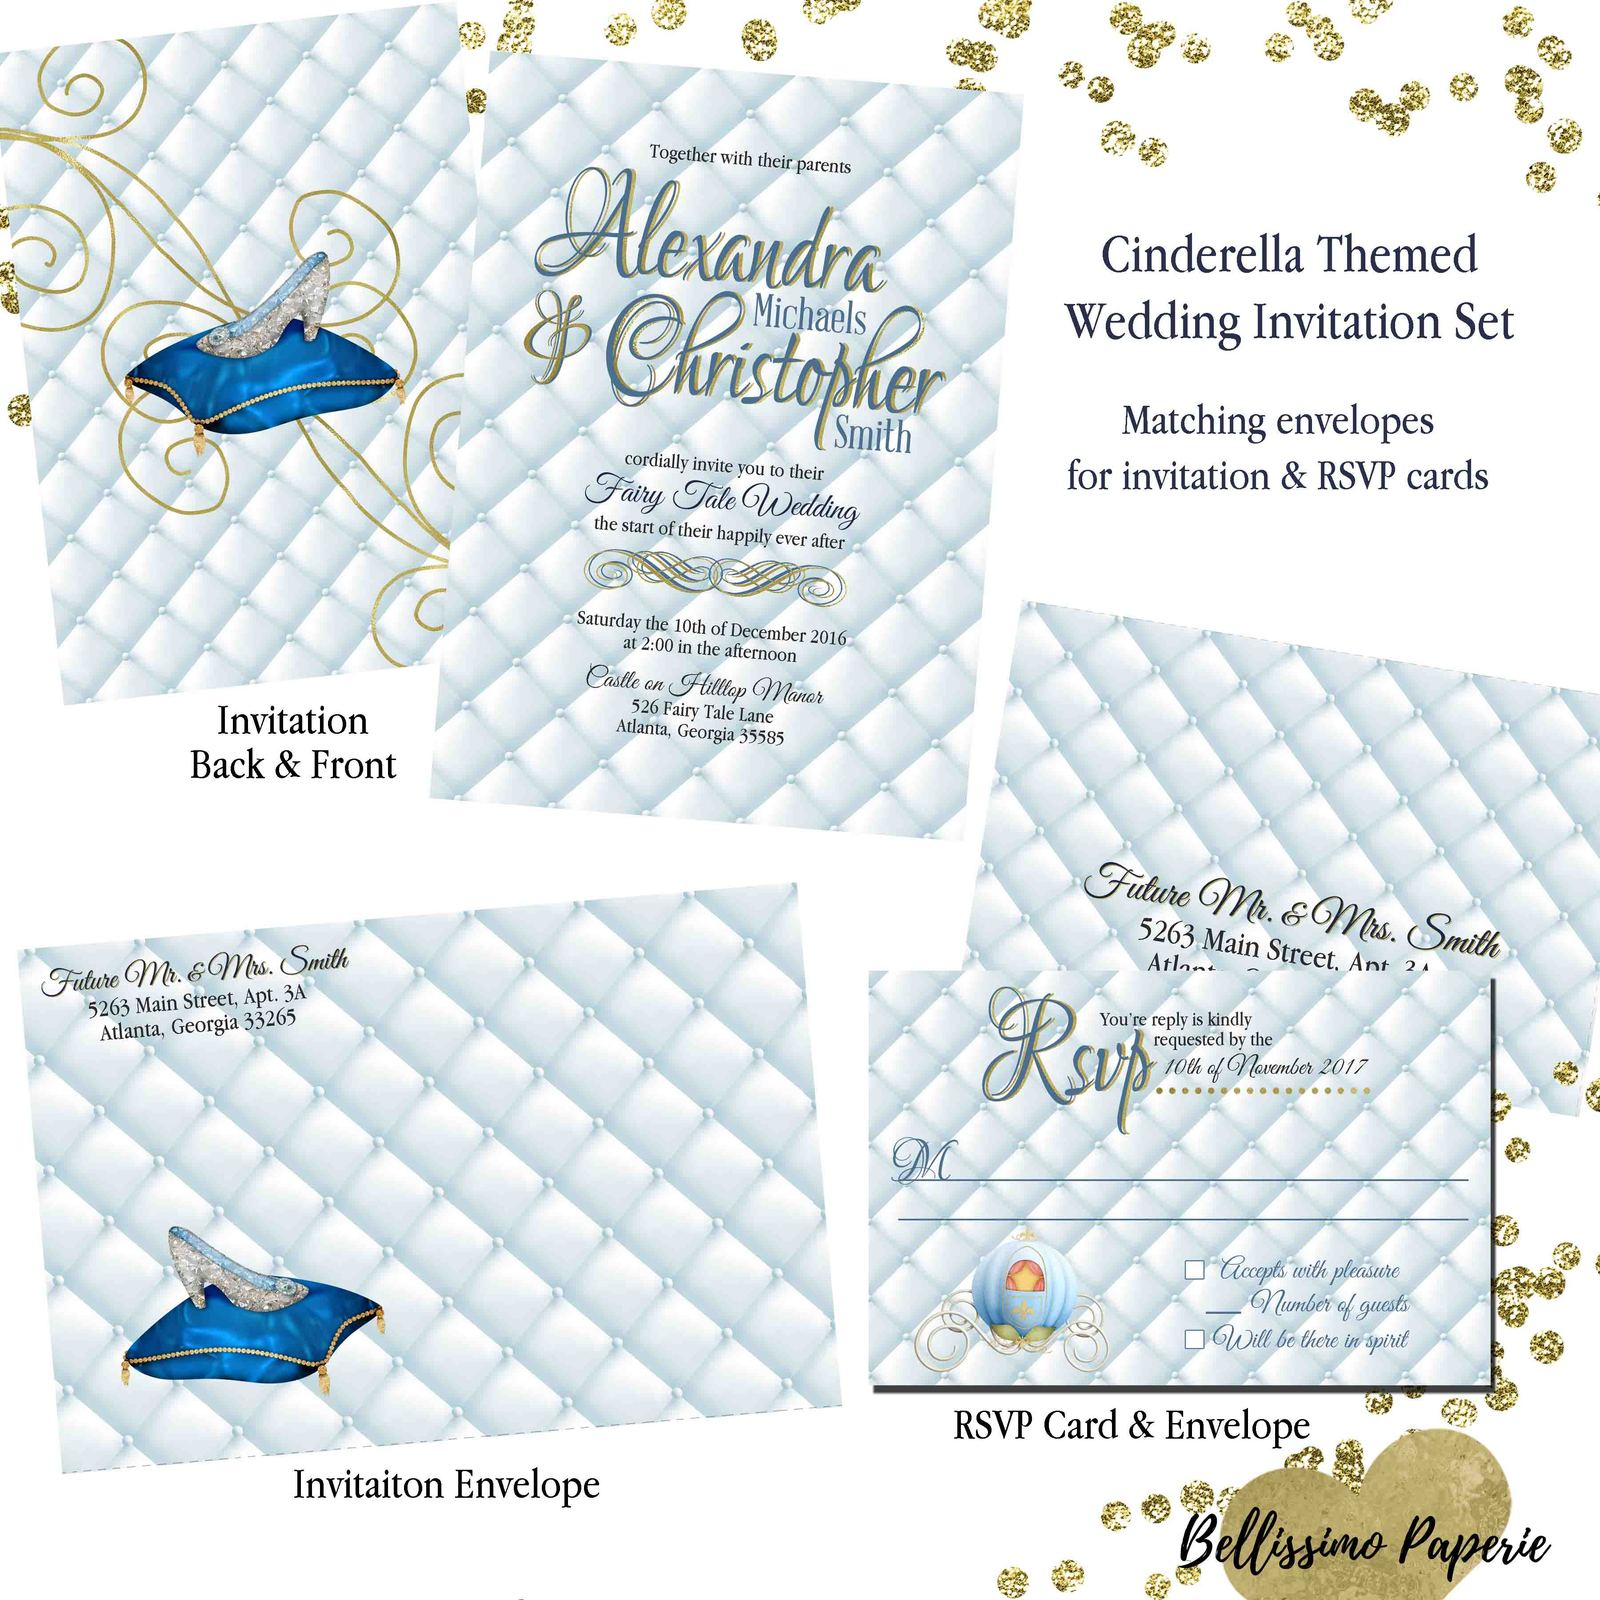 Cinderella Inspired Wedding invitation Set: and similar items